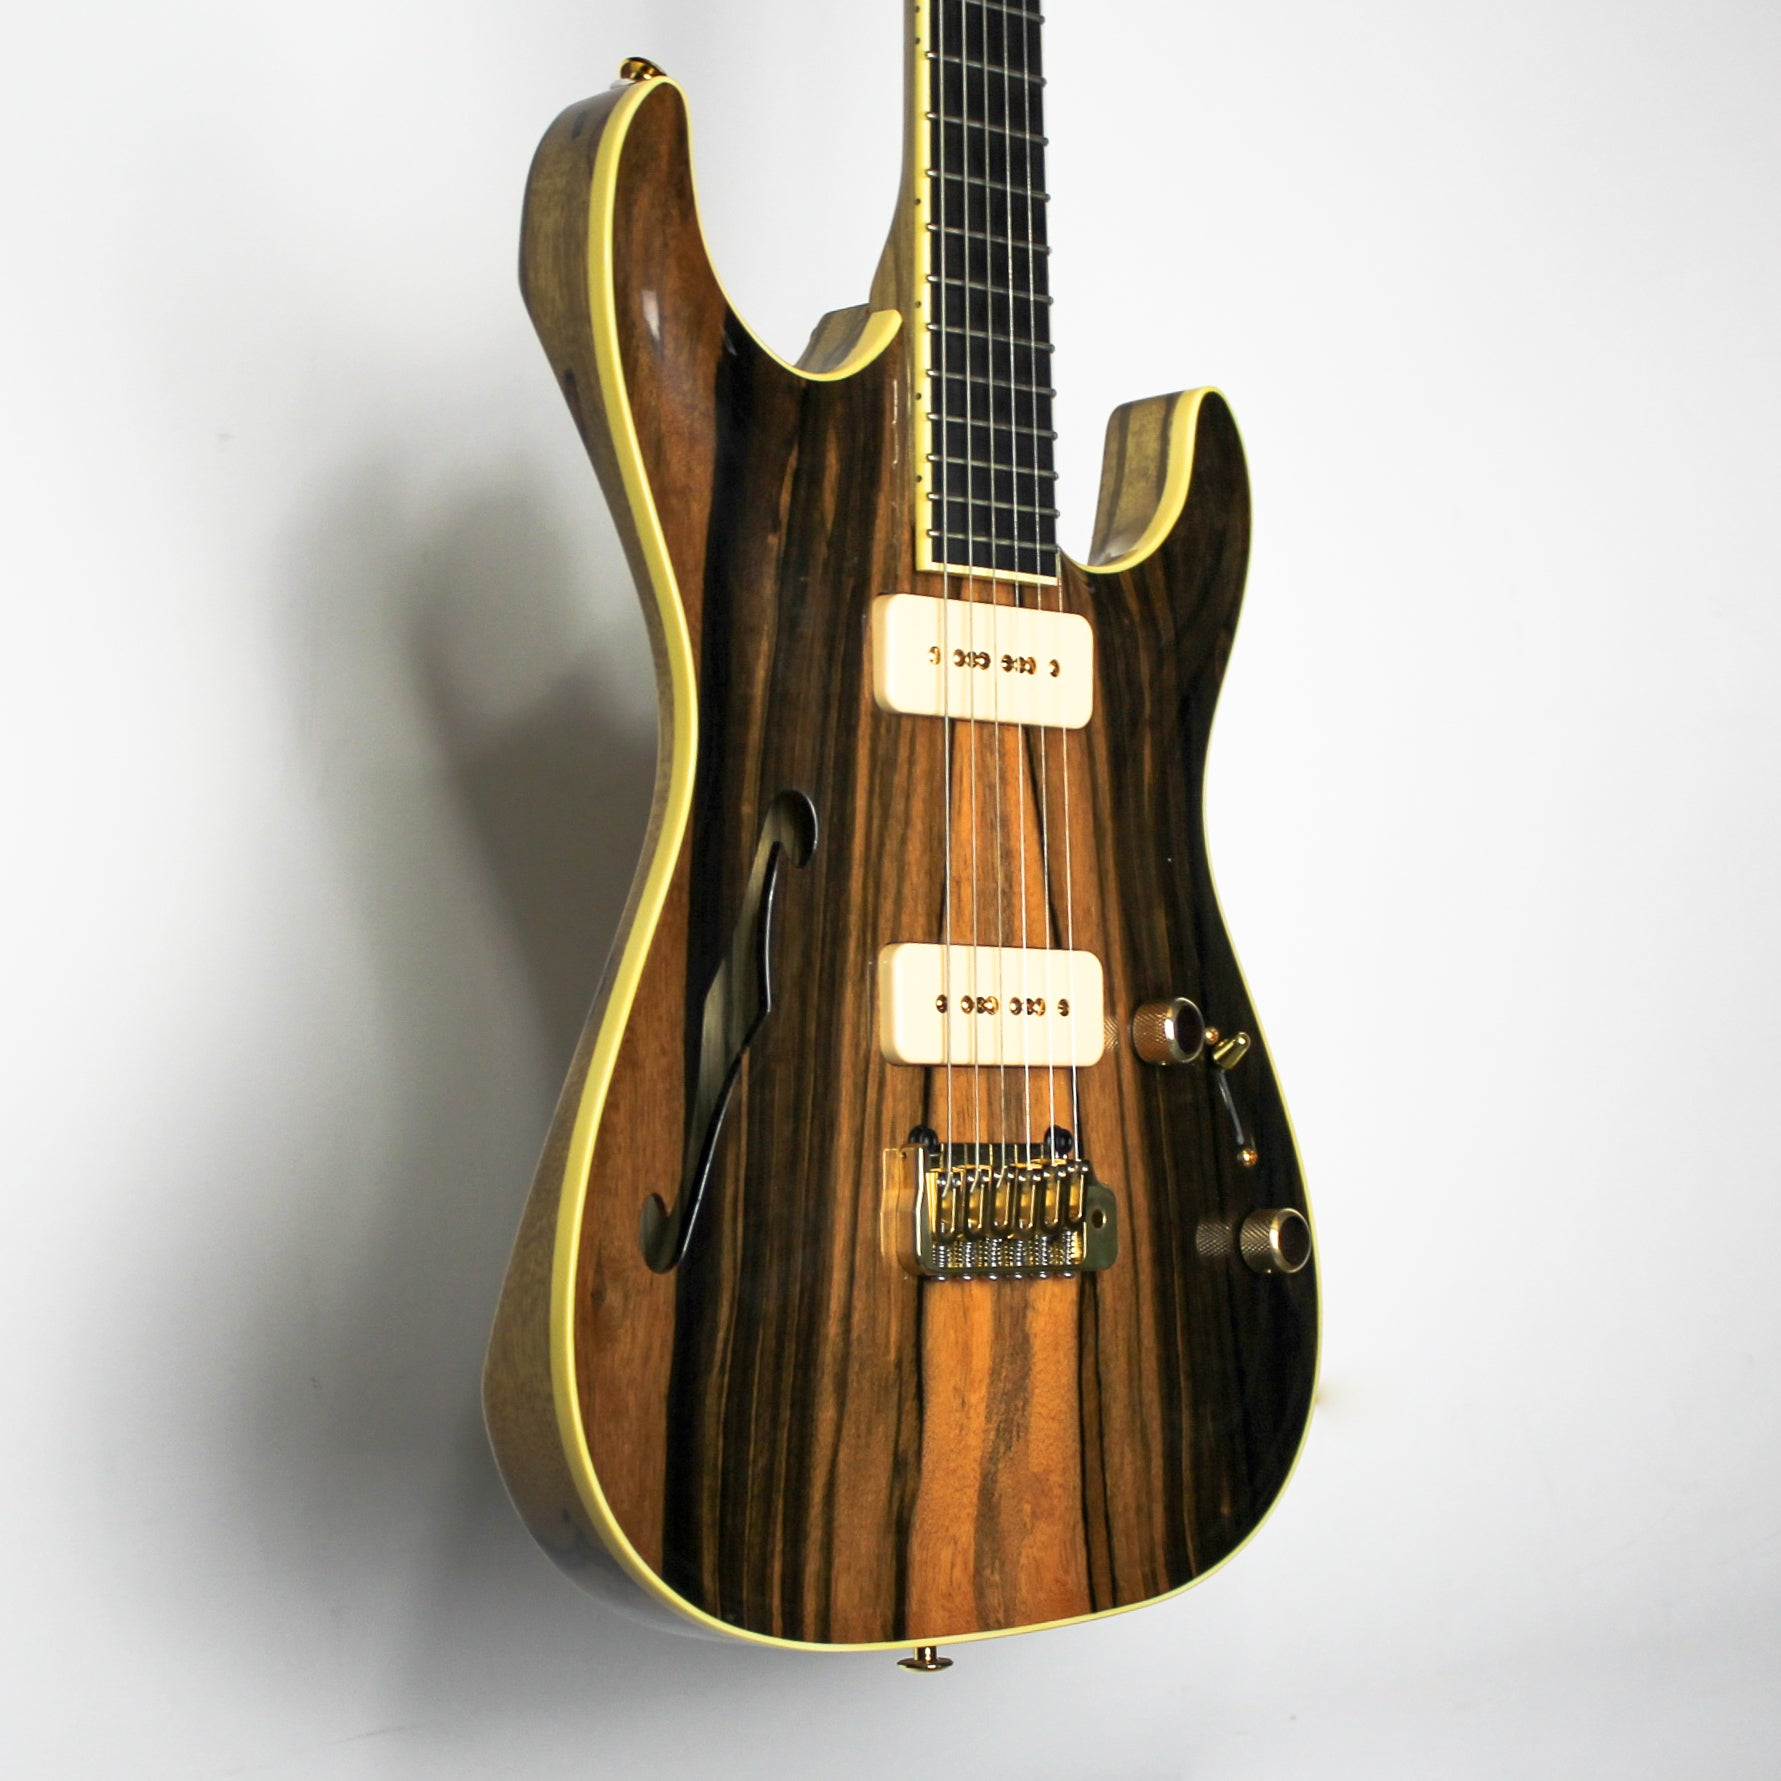 Pensa Rudy's 40th Anniversary MK-40 Macassar Ebony/Black Korina Thinline Natural 0802